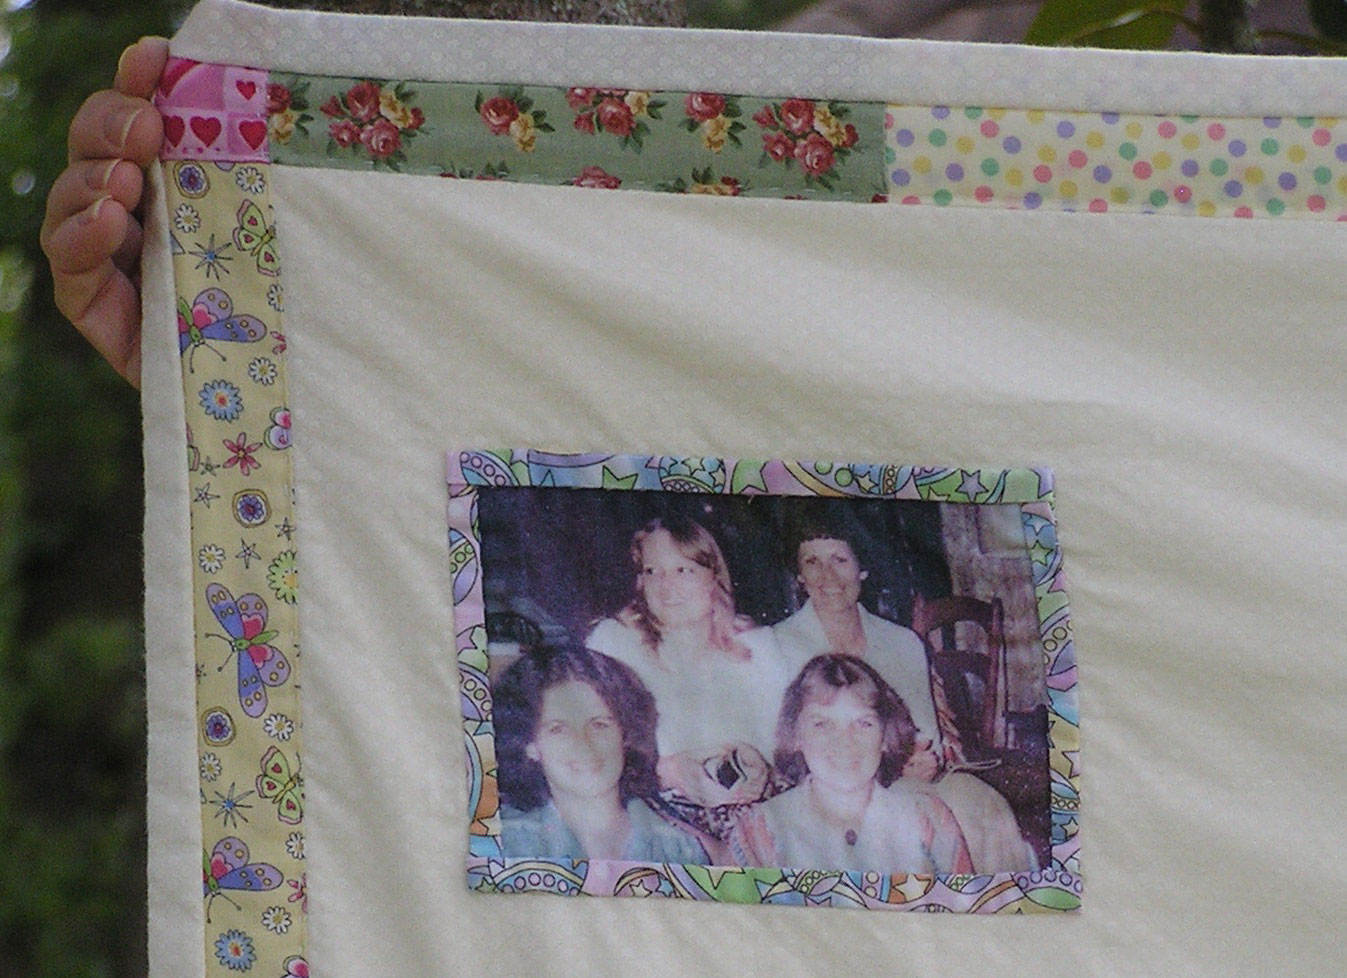 [Quilt Closeup showing cotton poplin fabric sheet print]